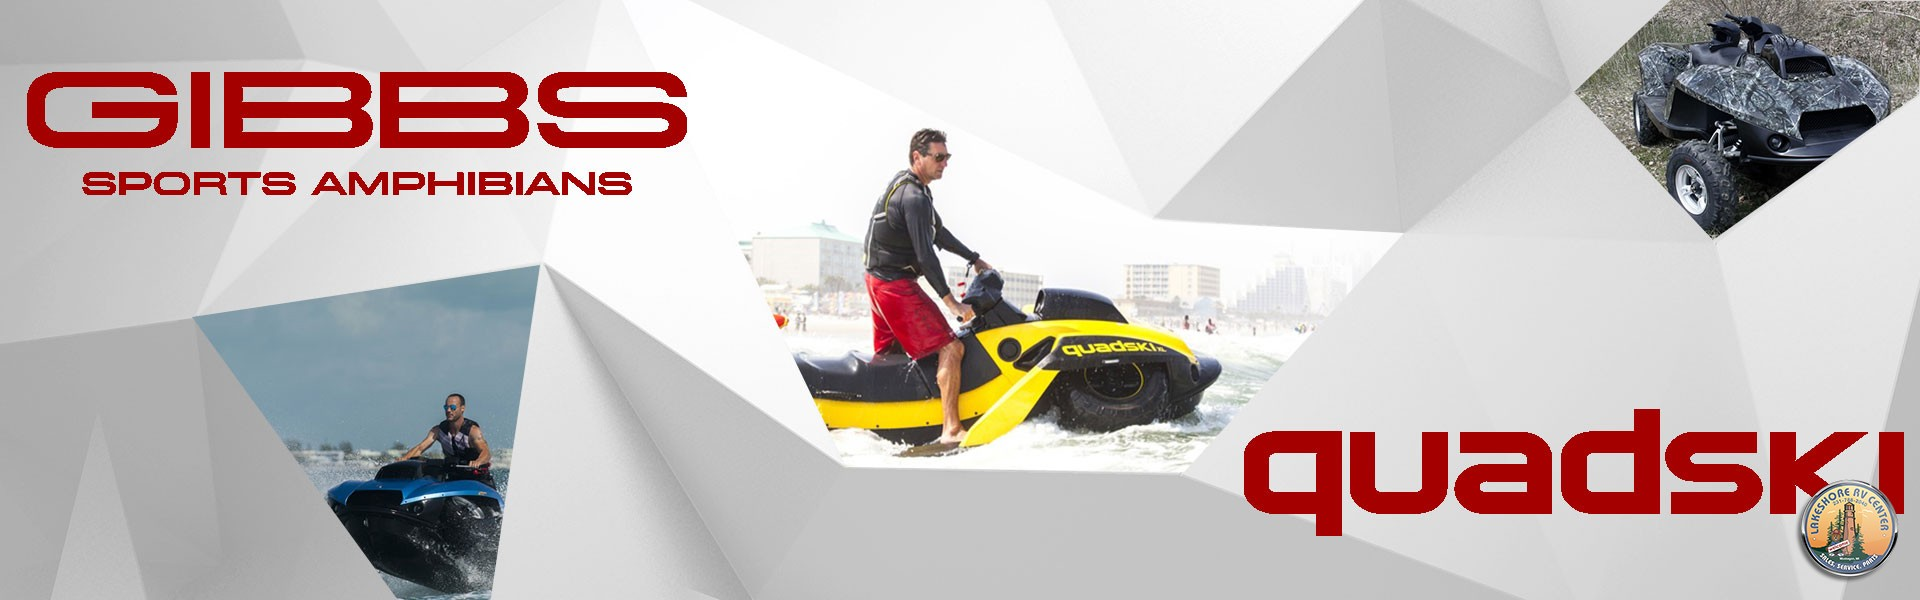 The 4 Wheeler Jet Ski From Gibbs Sports Amphibians Cleverly Named Quadski Is An Impressive Hybrid Creation That Combines A Personal Watercraft With